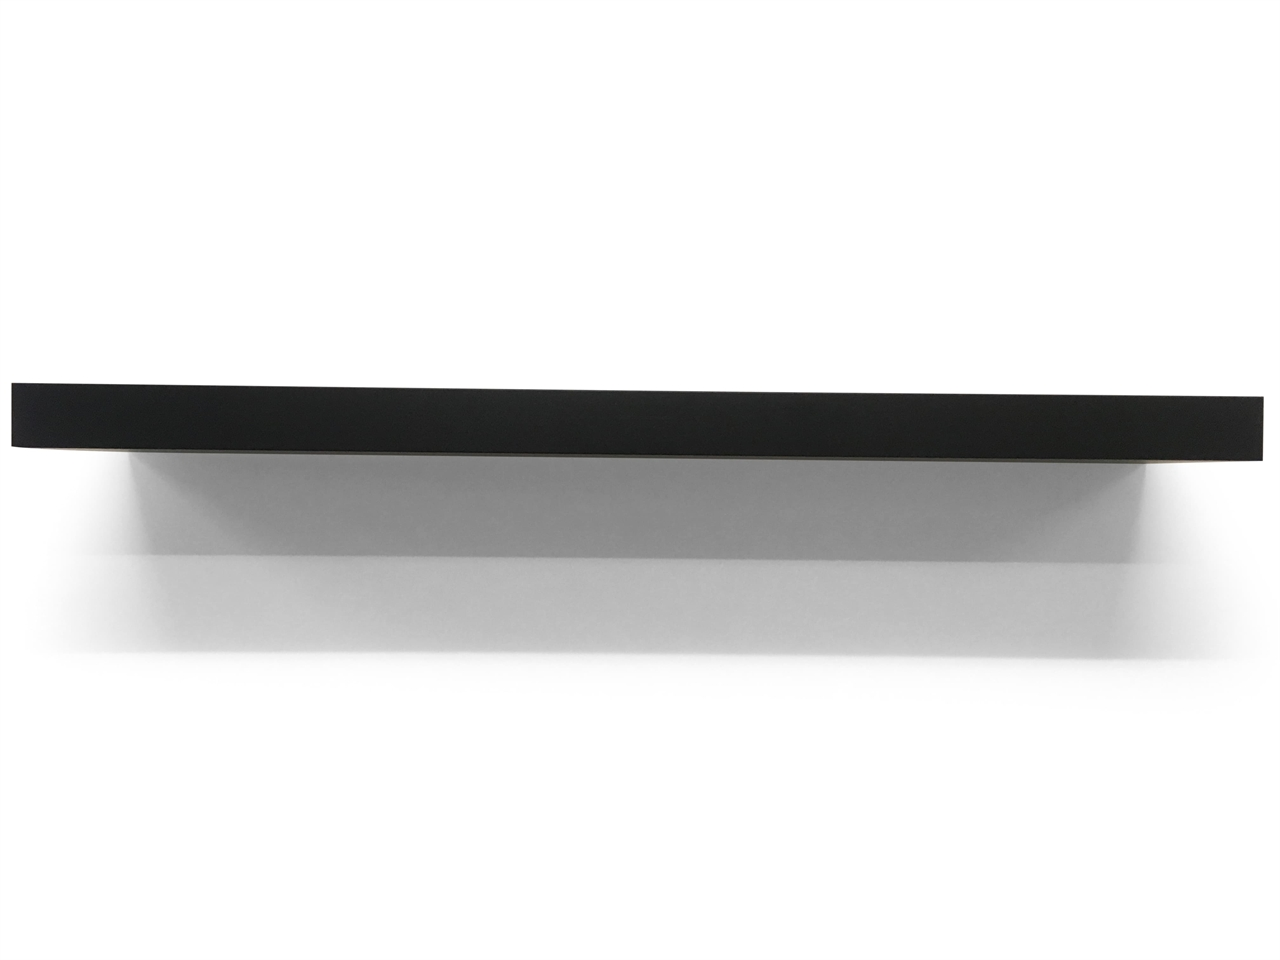 top shelf gallery black lacquer floating matt click here order kitchen counter depth entry mirror with coat hooks wall media cabinet diy entryway bench ikea kallax boxes bookshelf